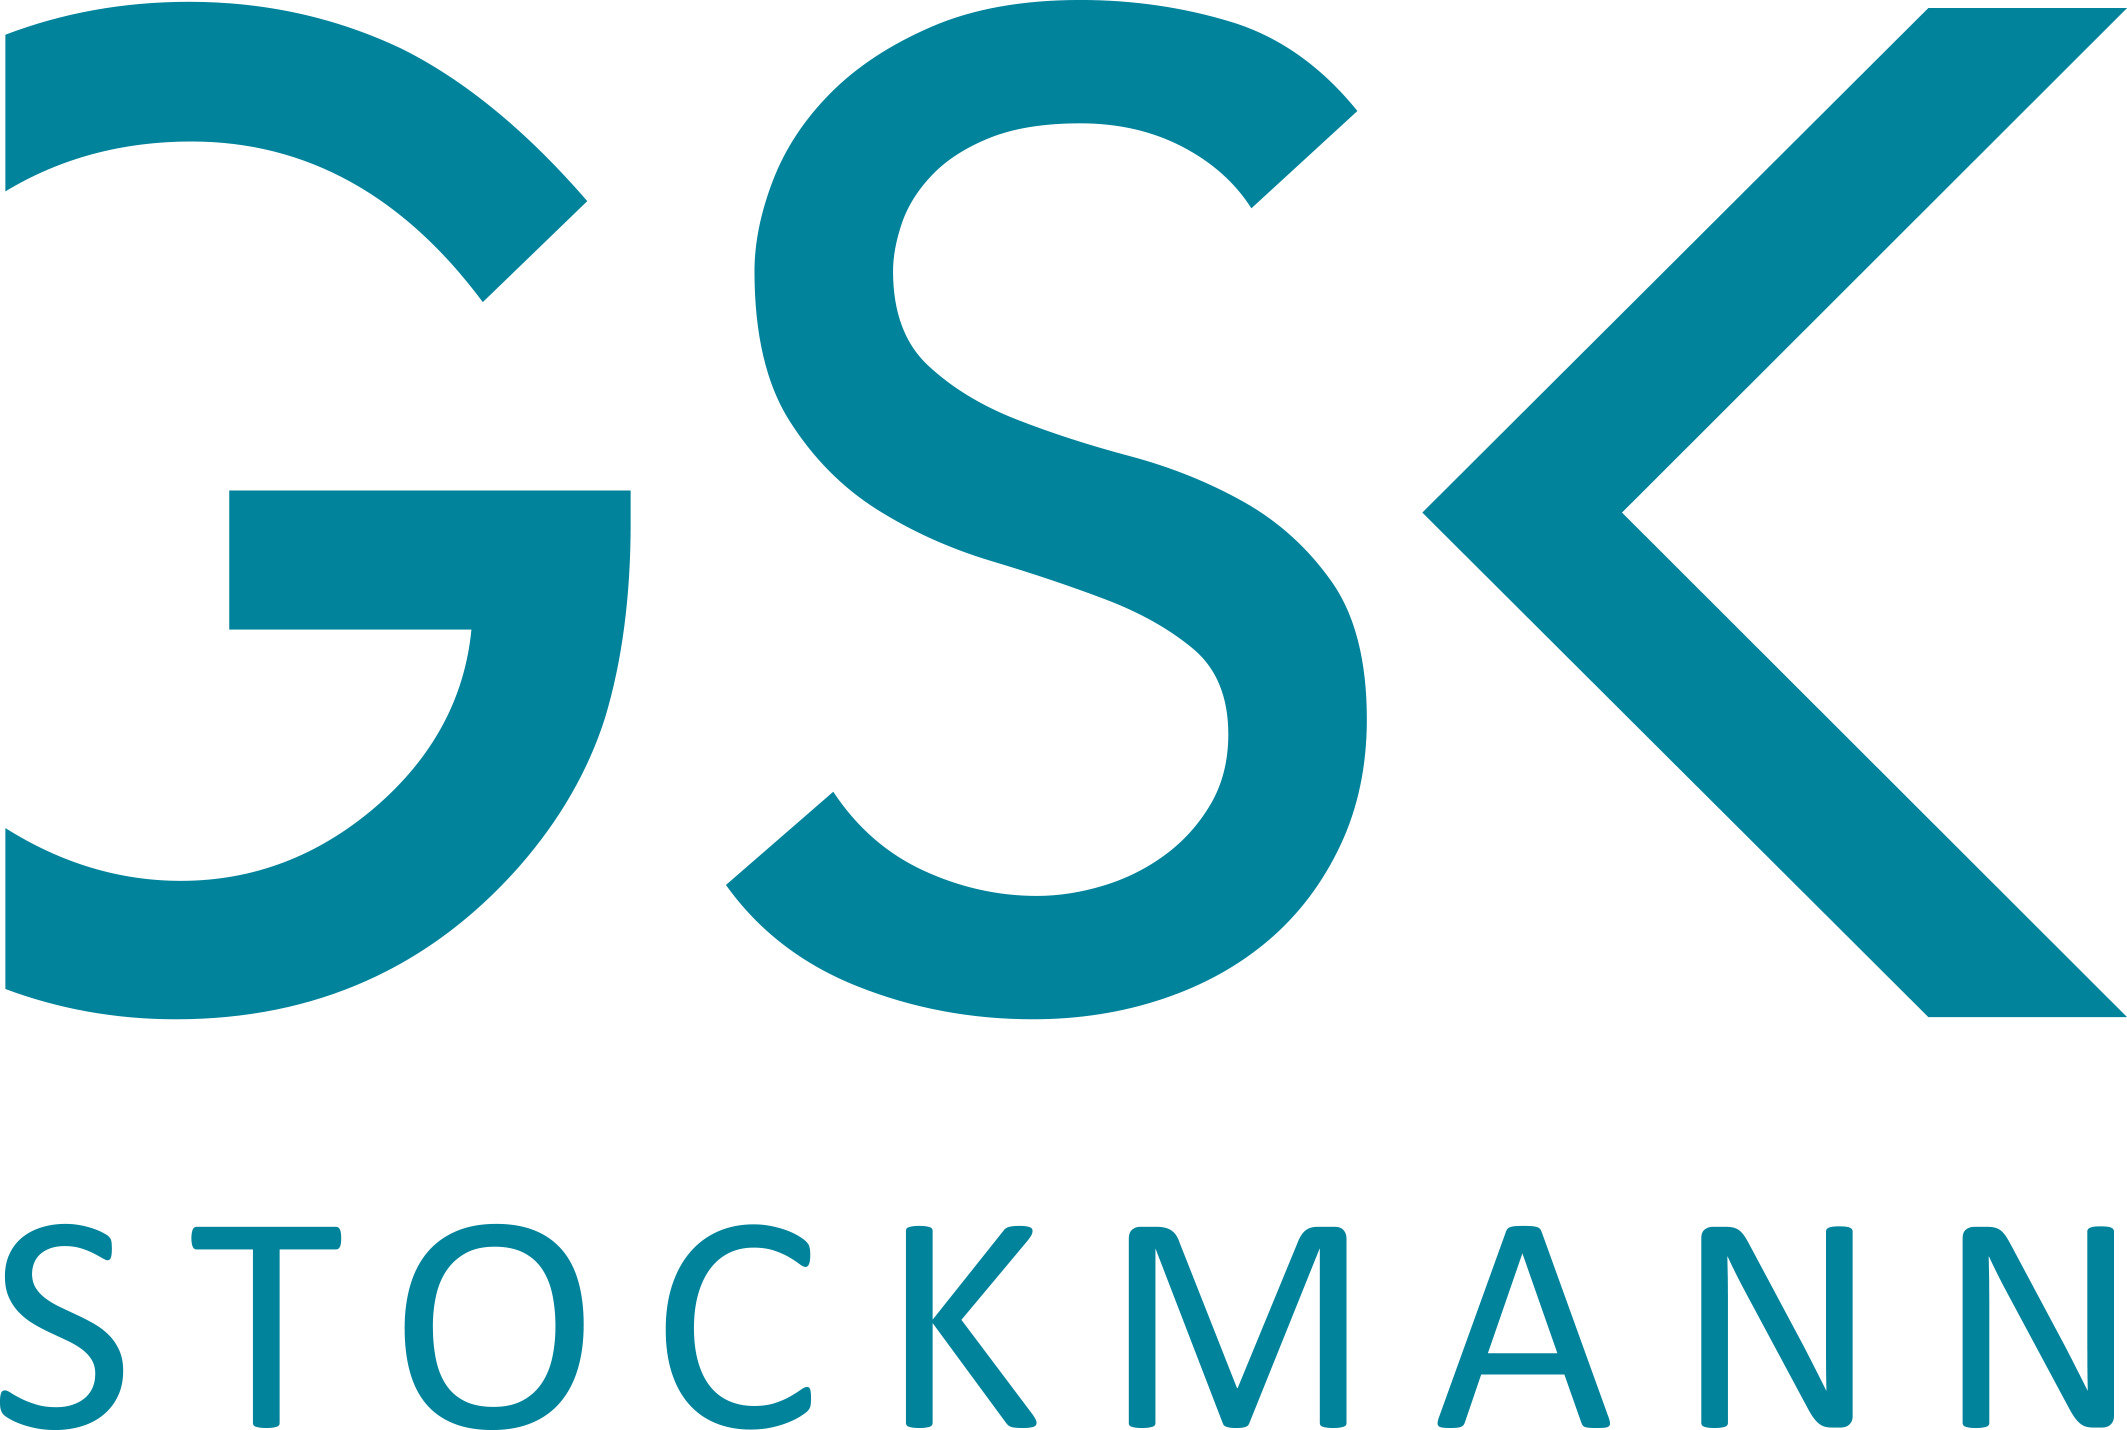 GSK Stockmann S.A.